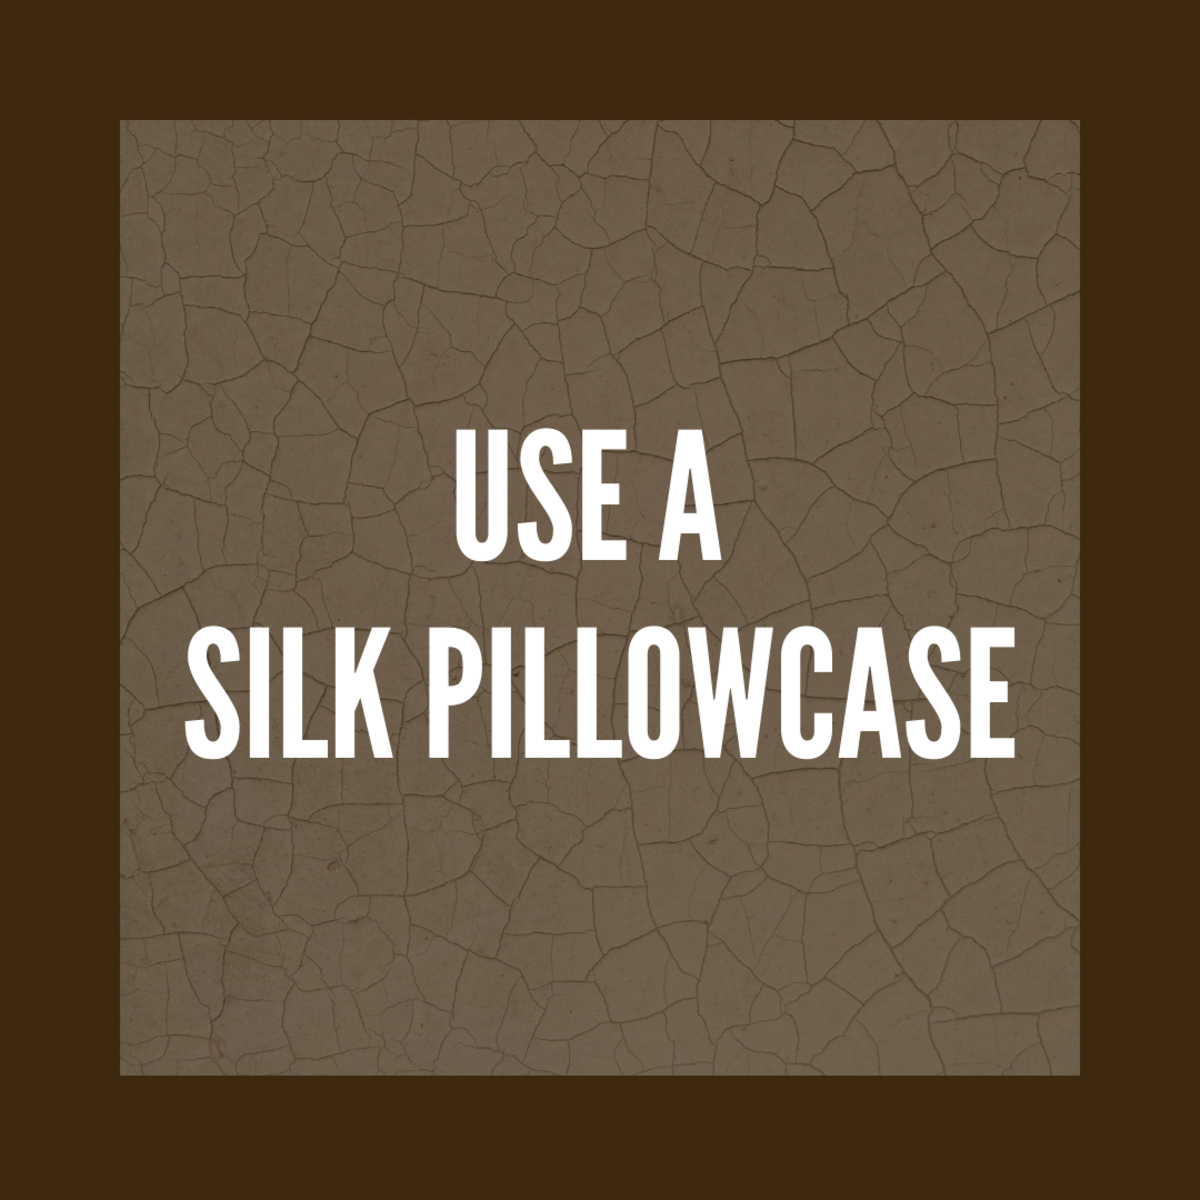 A silk pillowcase not only feels luxurious, but it can also help with acne.